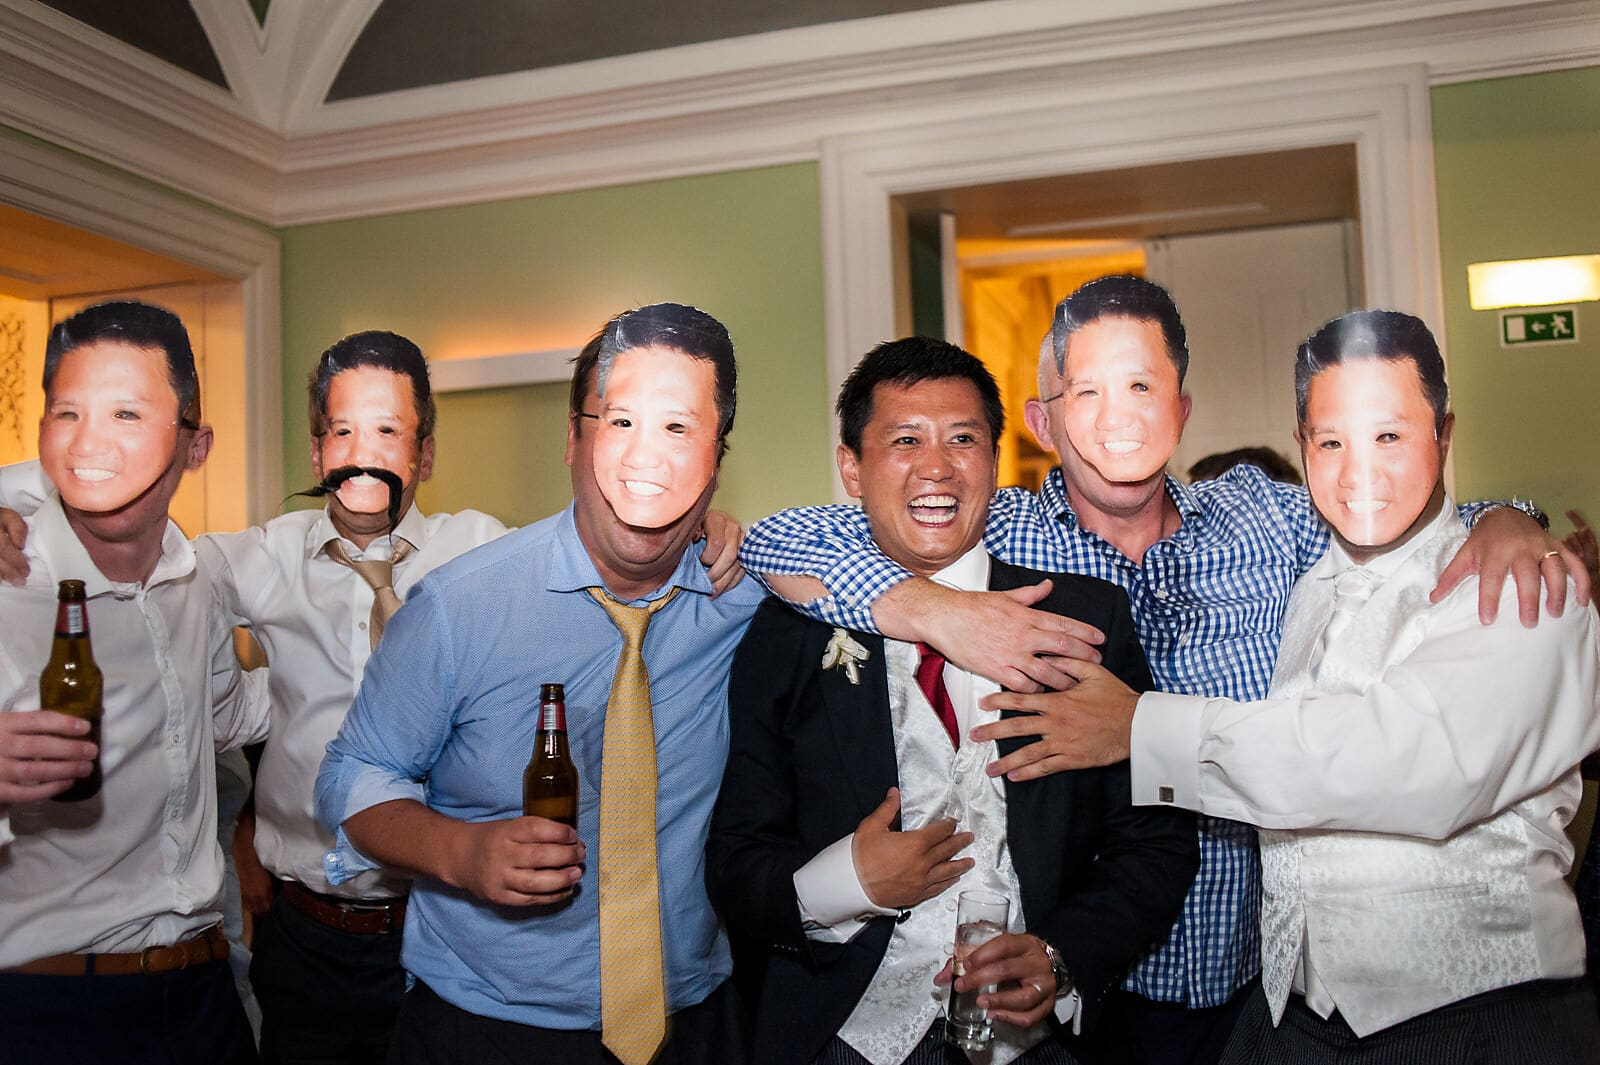 Groom dances with groomsmen all wearing his face masks